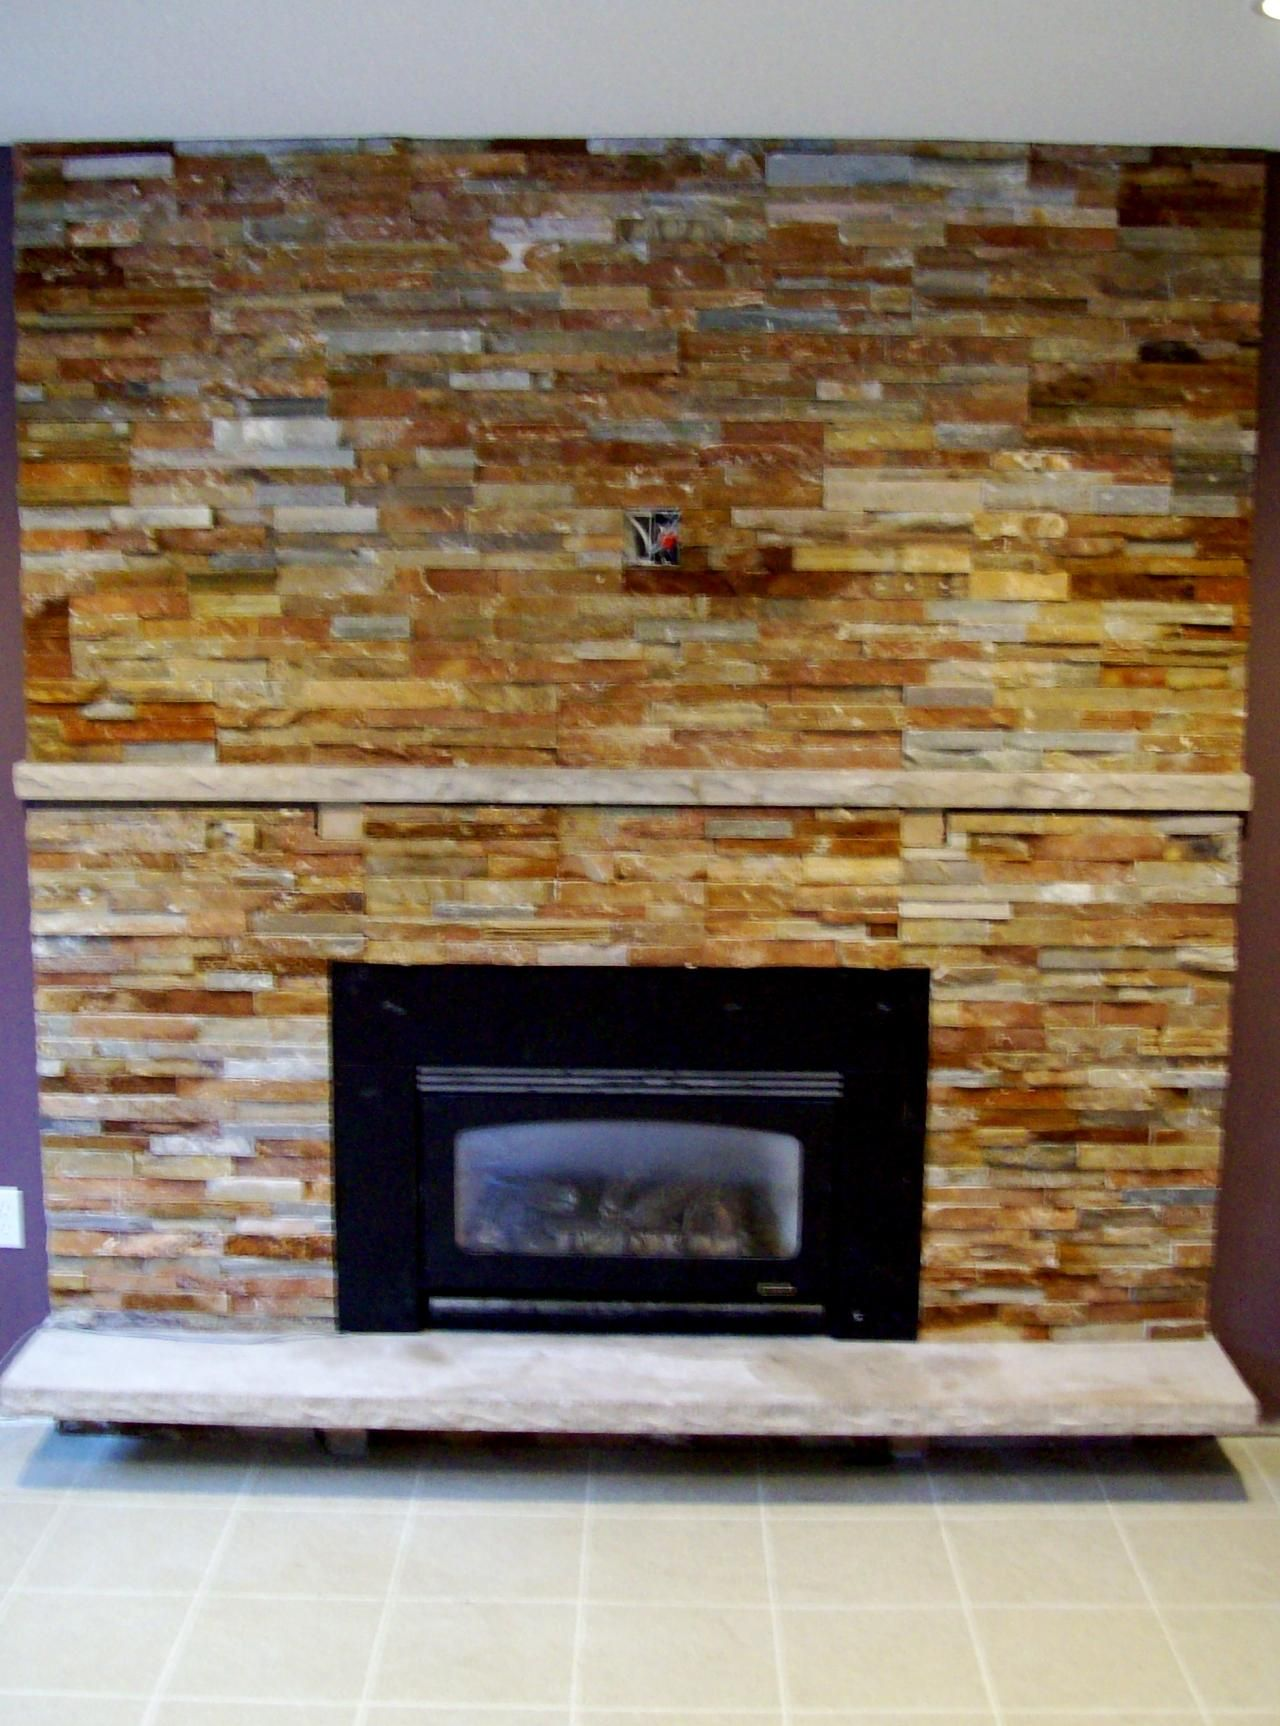 by product gas installations vented final home european fireplace stones media fire